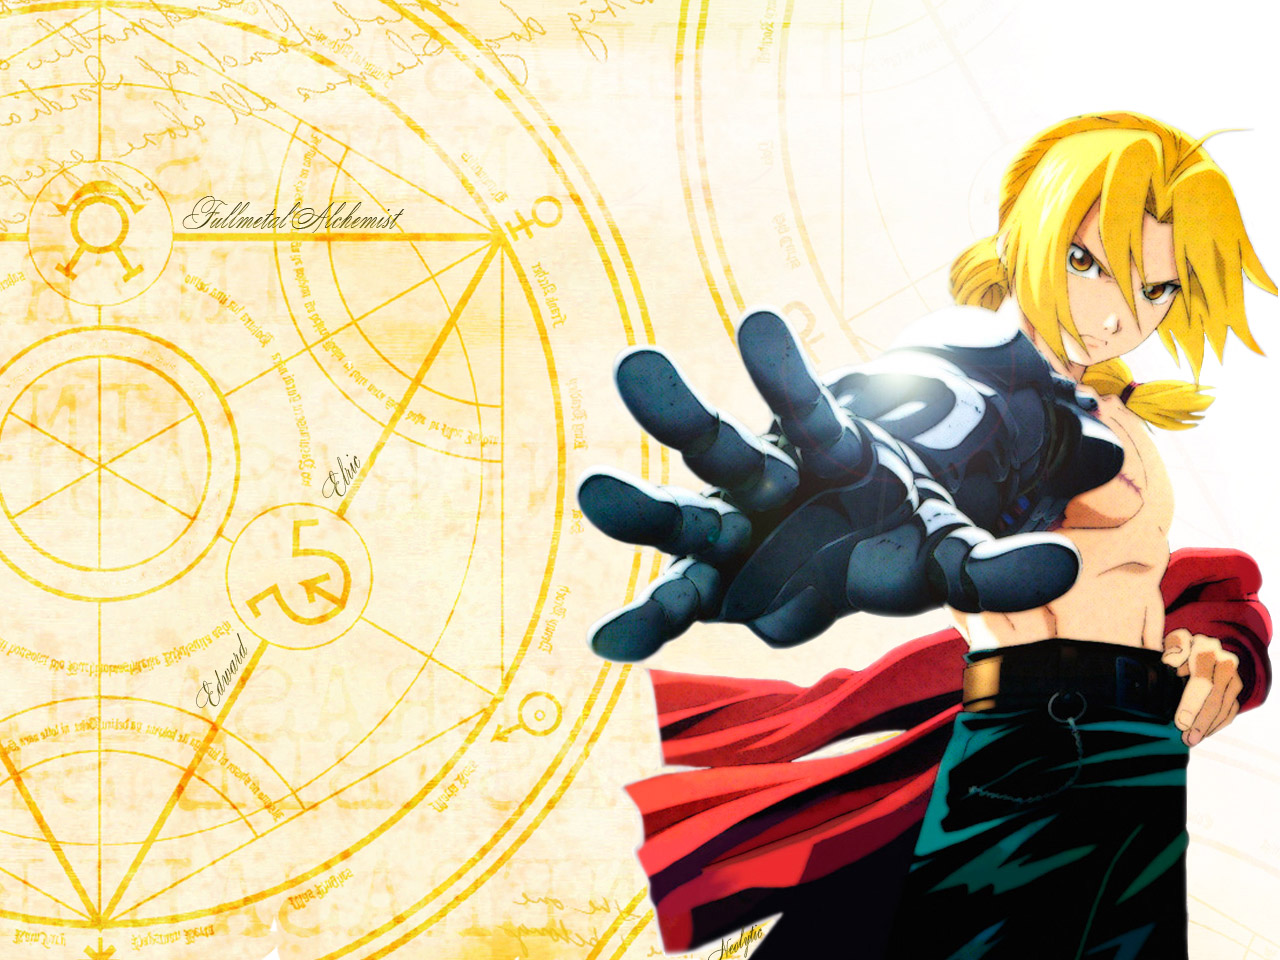 23 Fullmetal Alchemist 2 Anime and Manga Pictures   ImgHD Browse and 1280x960